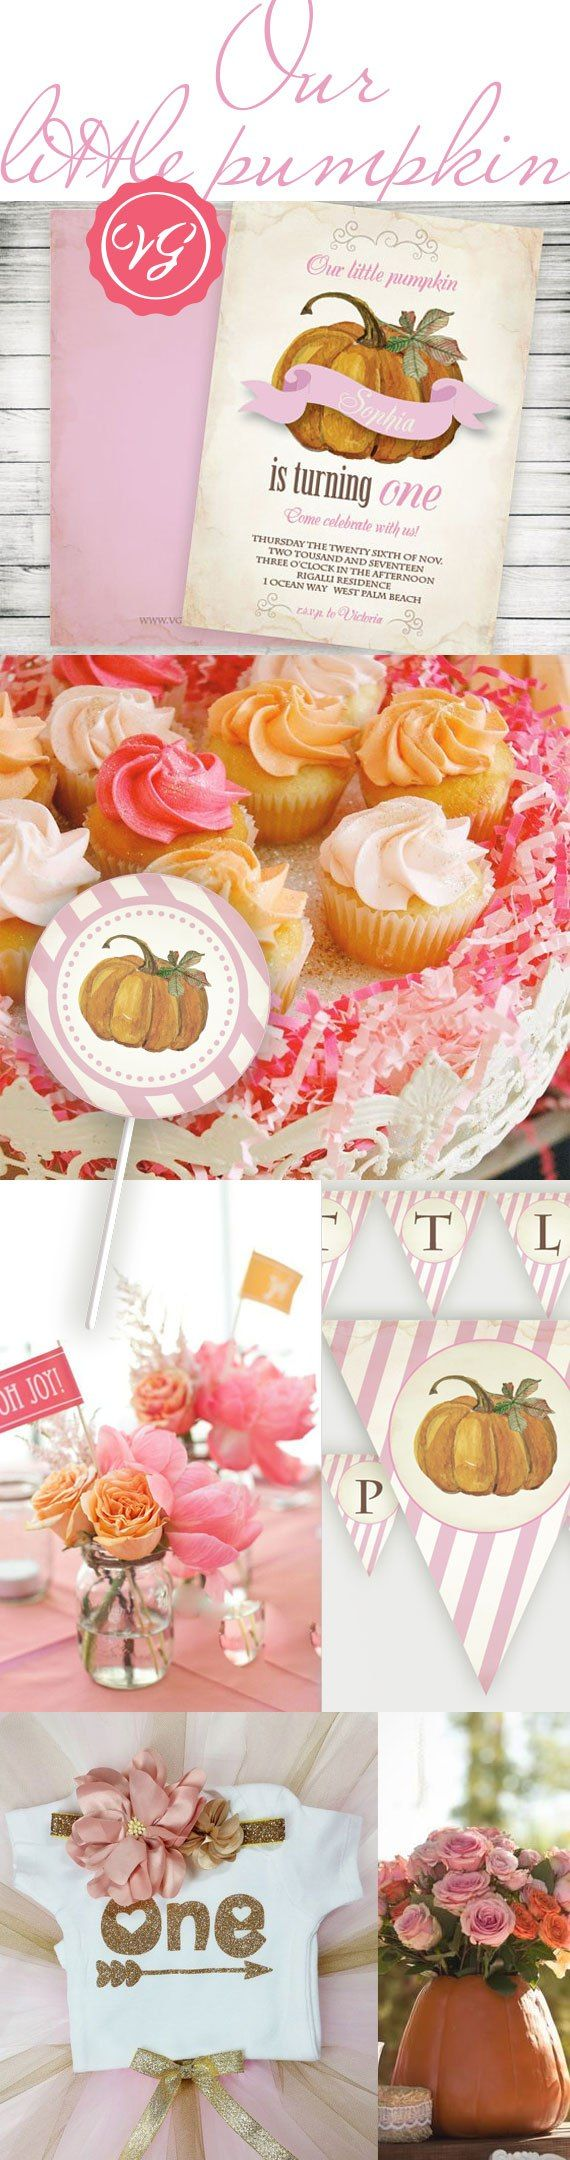 October Birthday Party Ideas